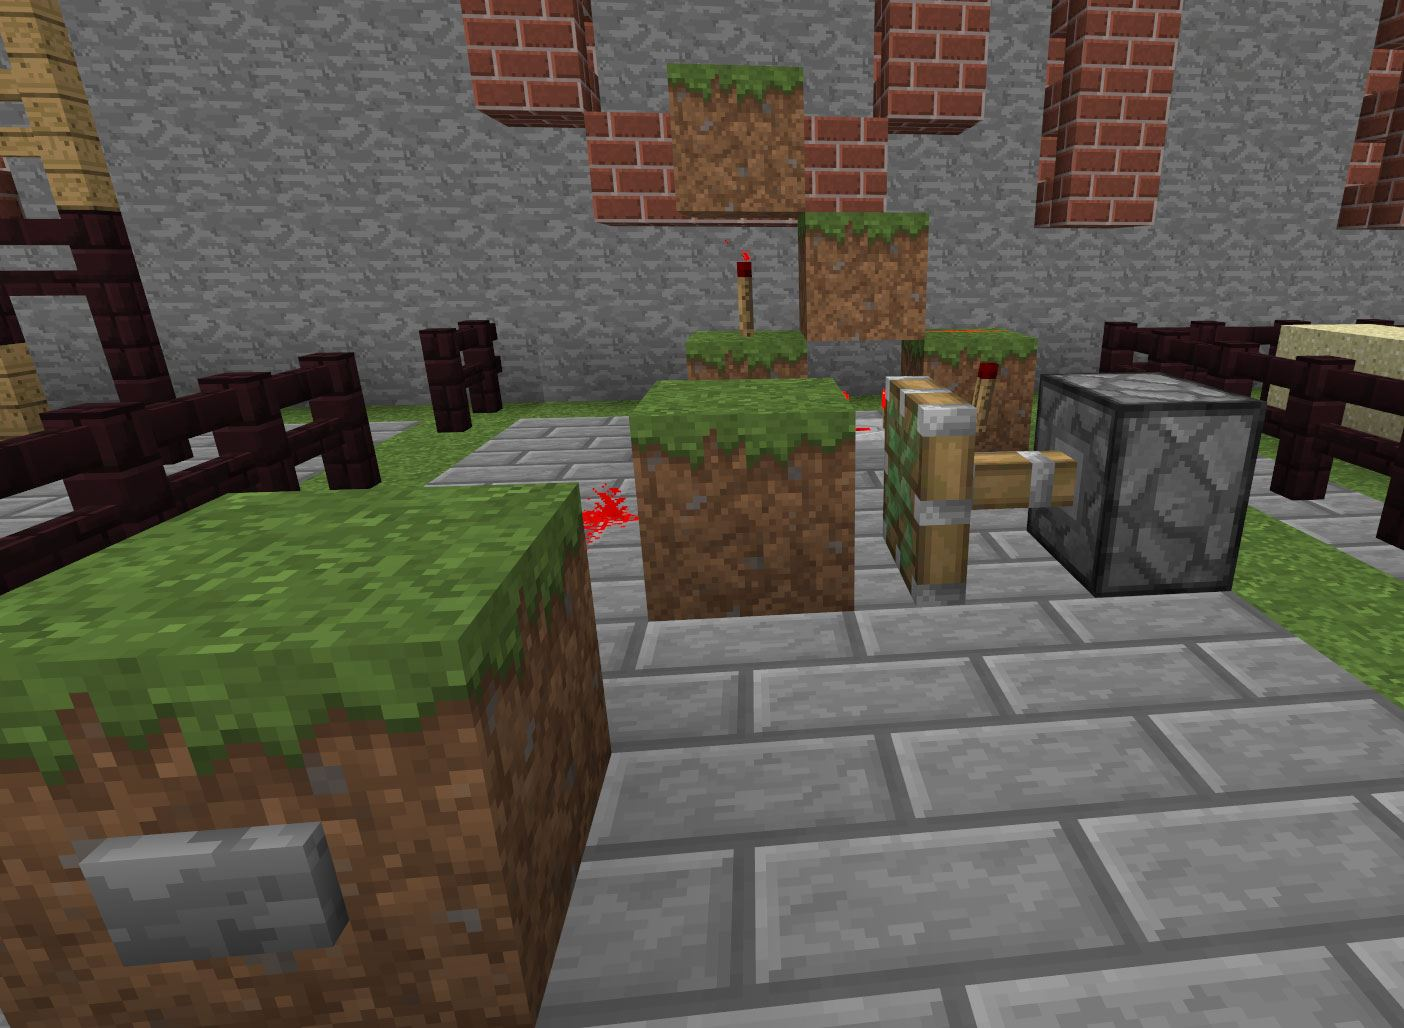 Wonderful image of 20 Tricks You Didn't Know You Could Do in Minecraft « Minecraft with #B41817 color and 1404x1028 pixels